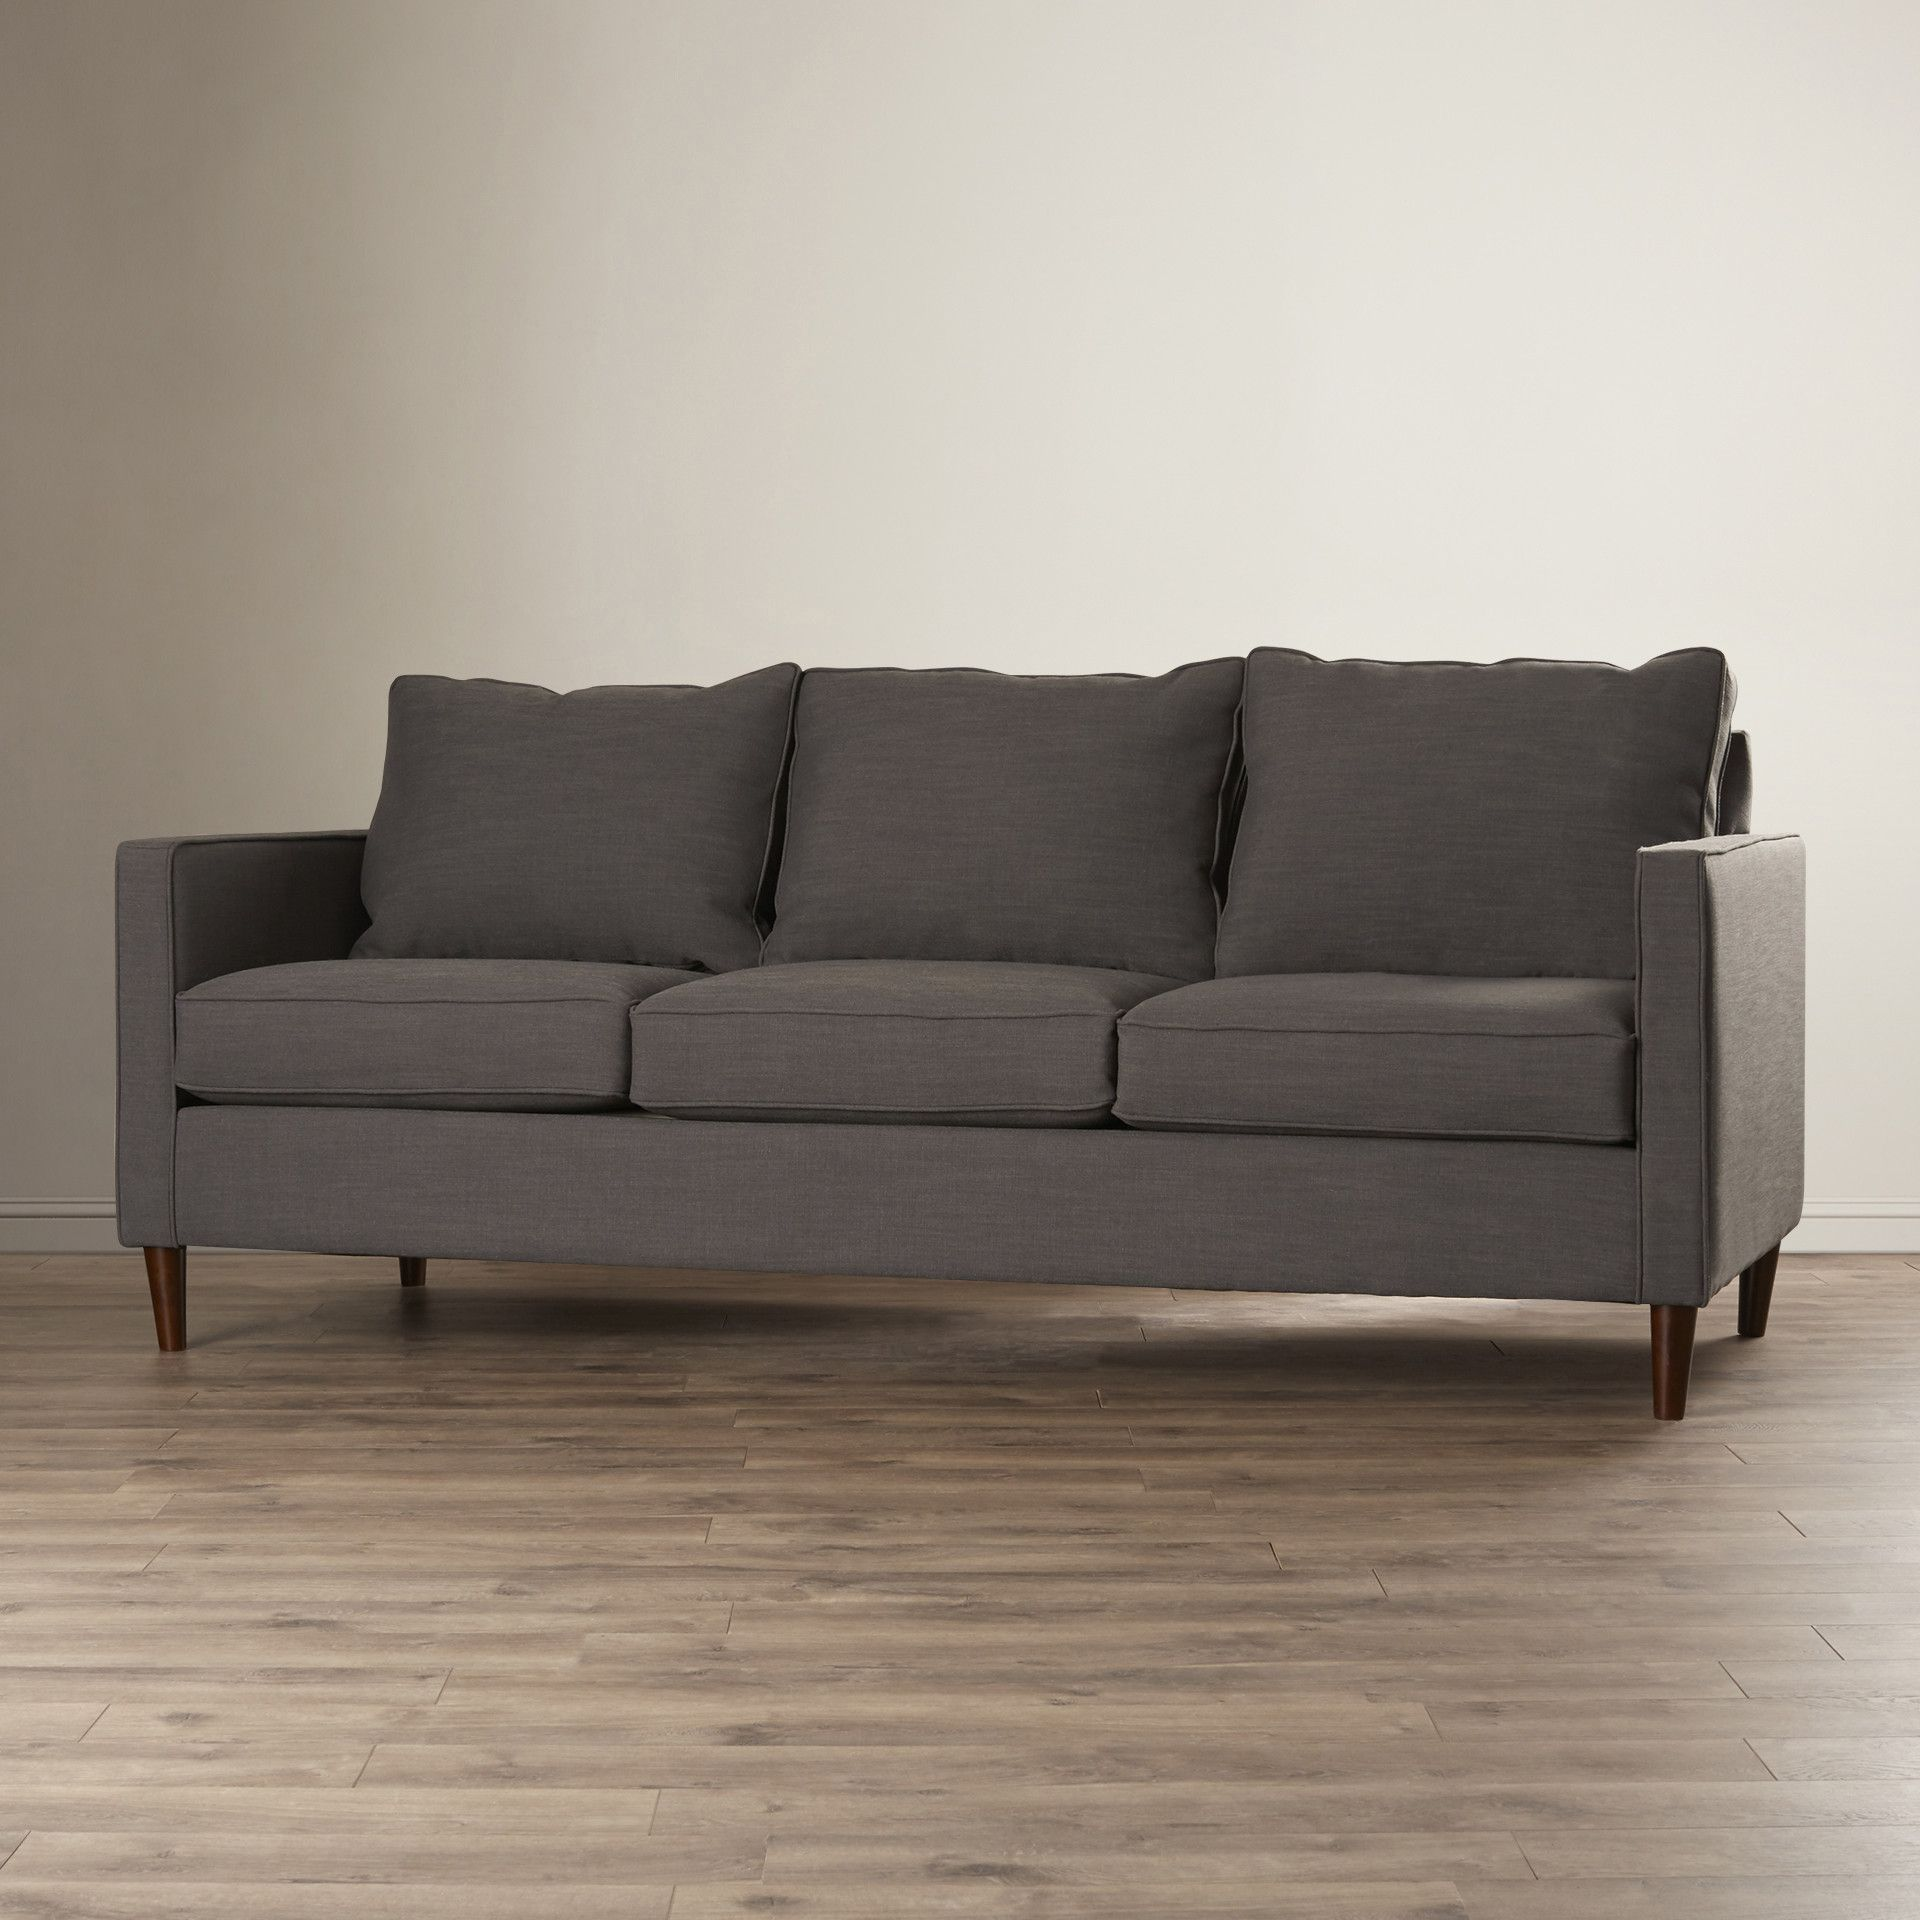 Del lago ivy sofa transitional sofaslangley streetmodern